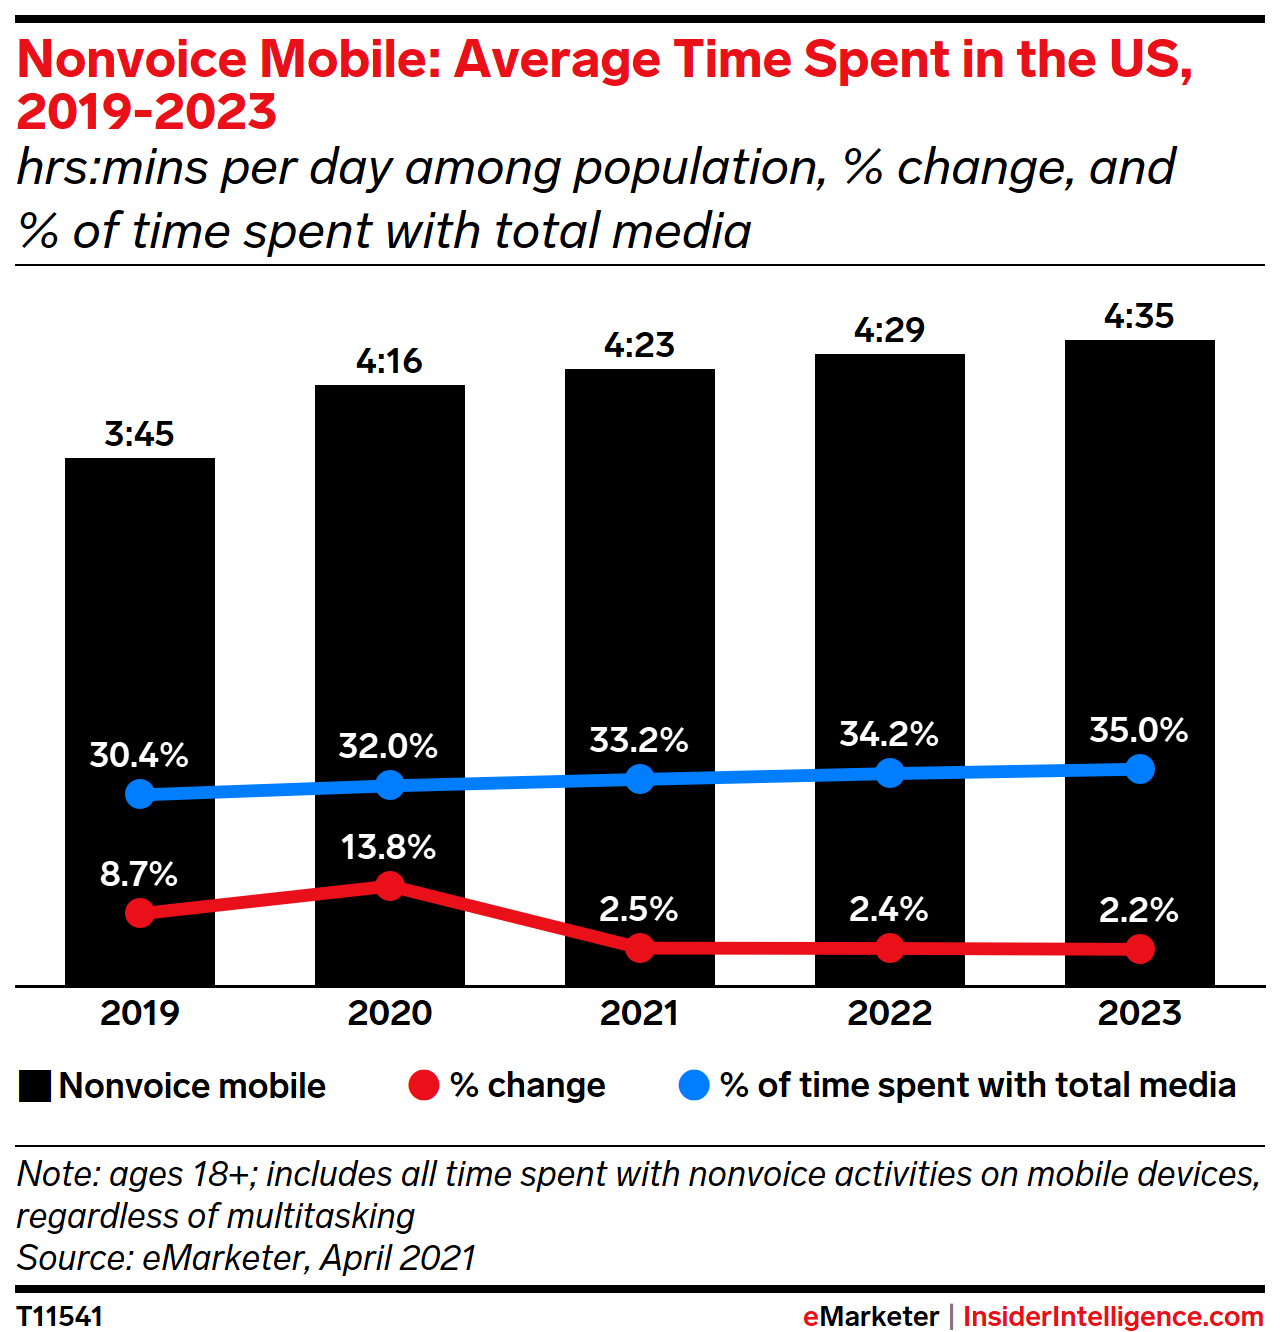 Mobile Nonvoice Activities : Average Time Spent in the US, 2019-2023 (hrs:mins per day among population, % change and % of total time spent with major media)